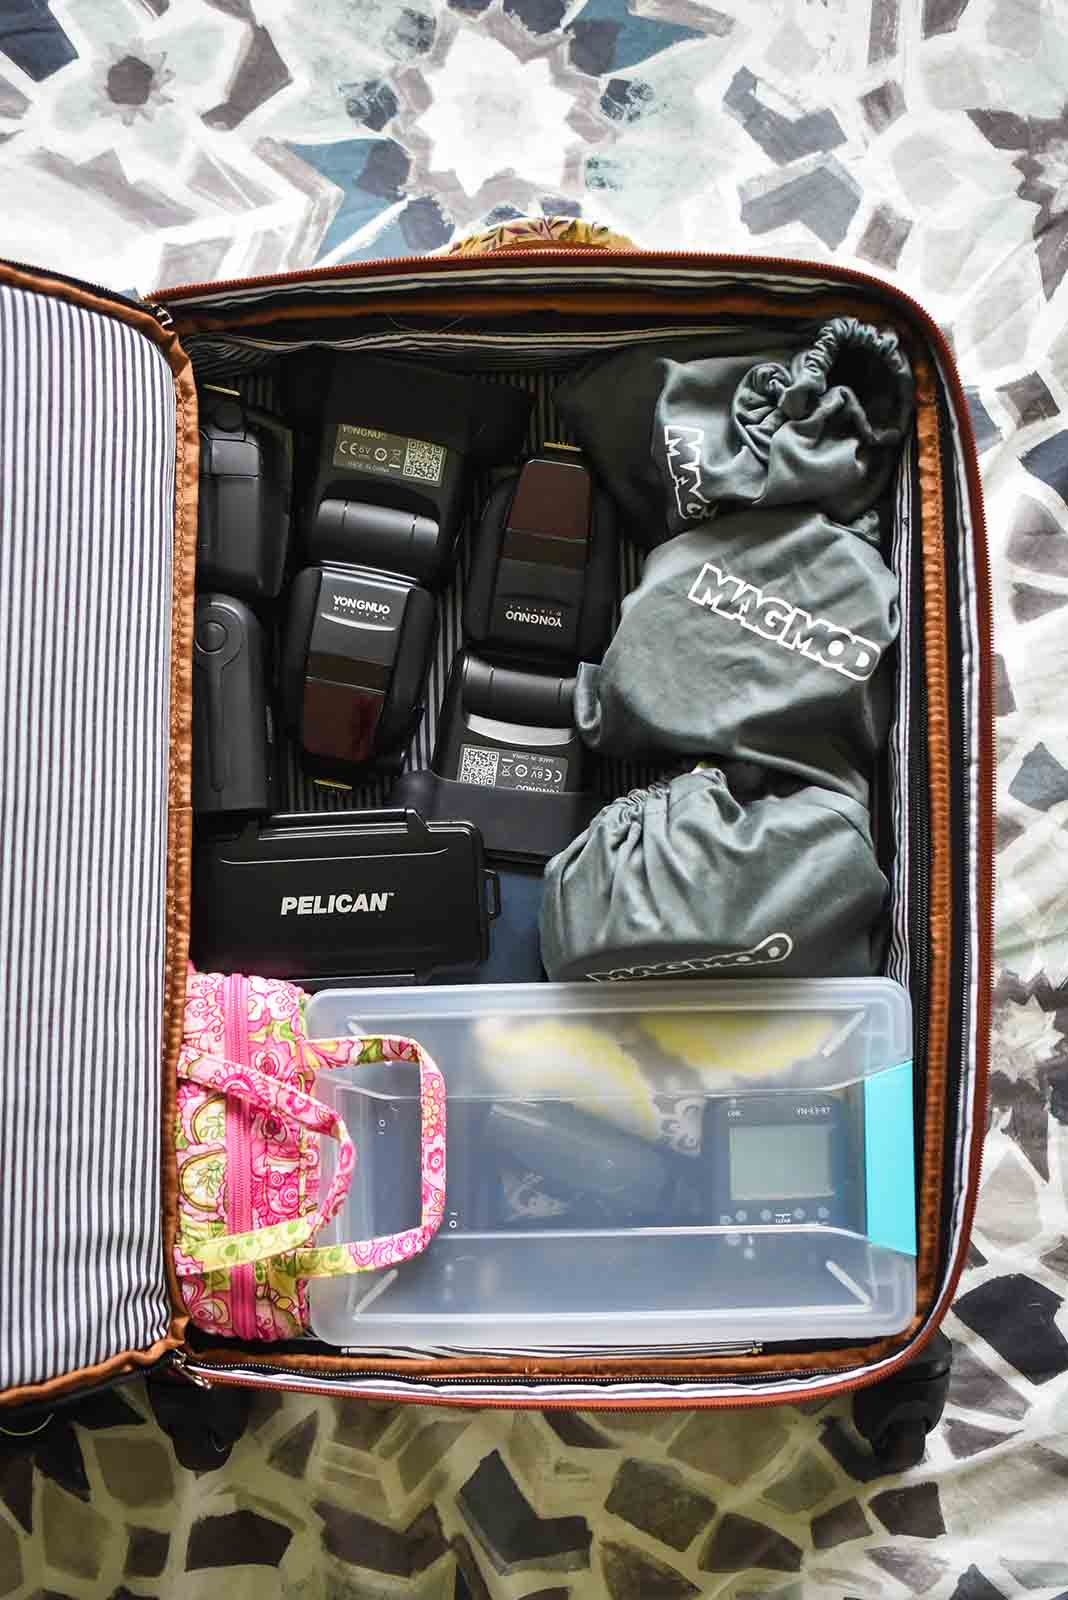 Traveling with photography gear - find the right bag.